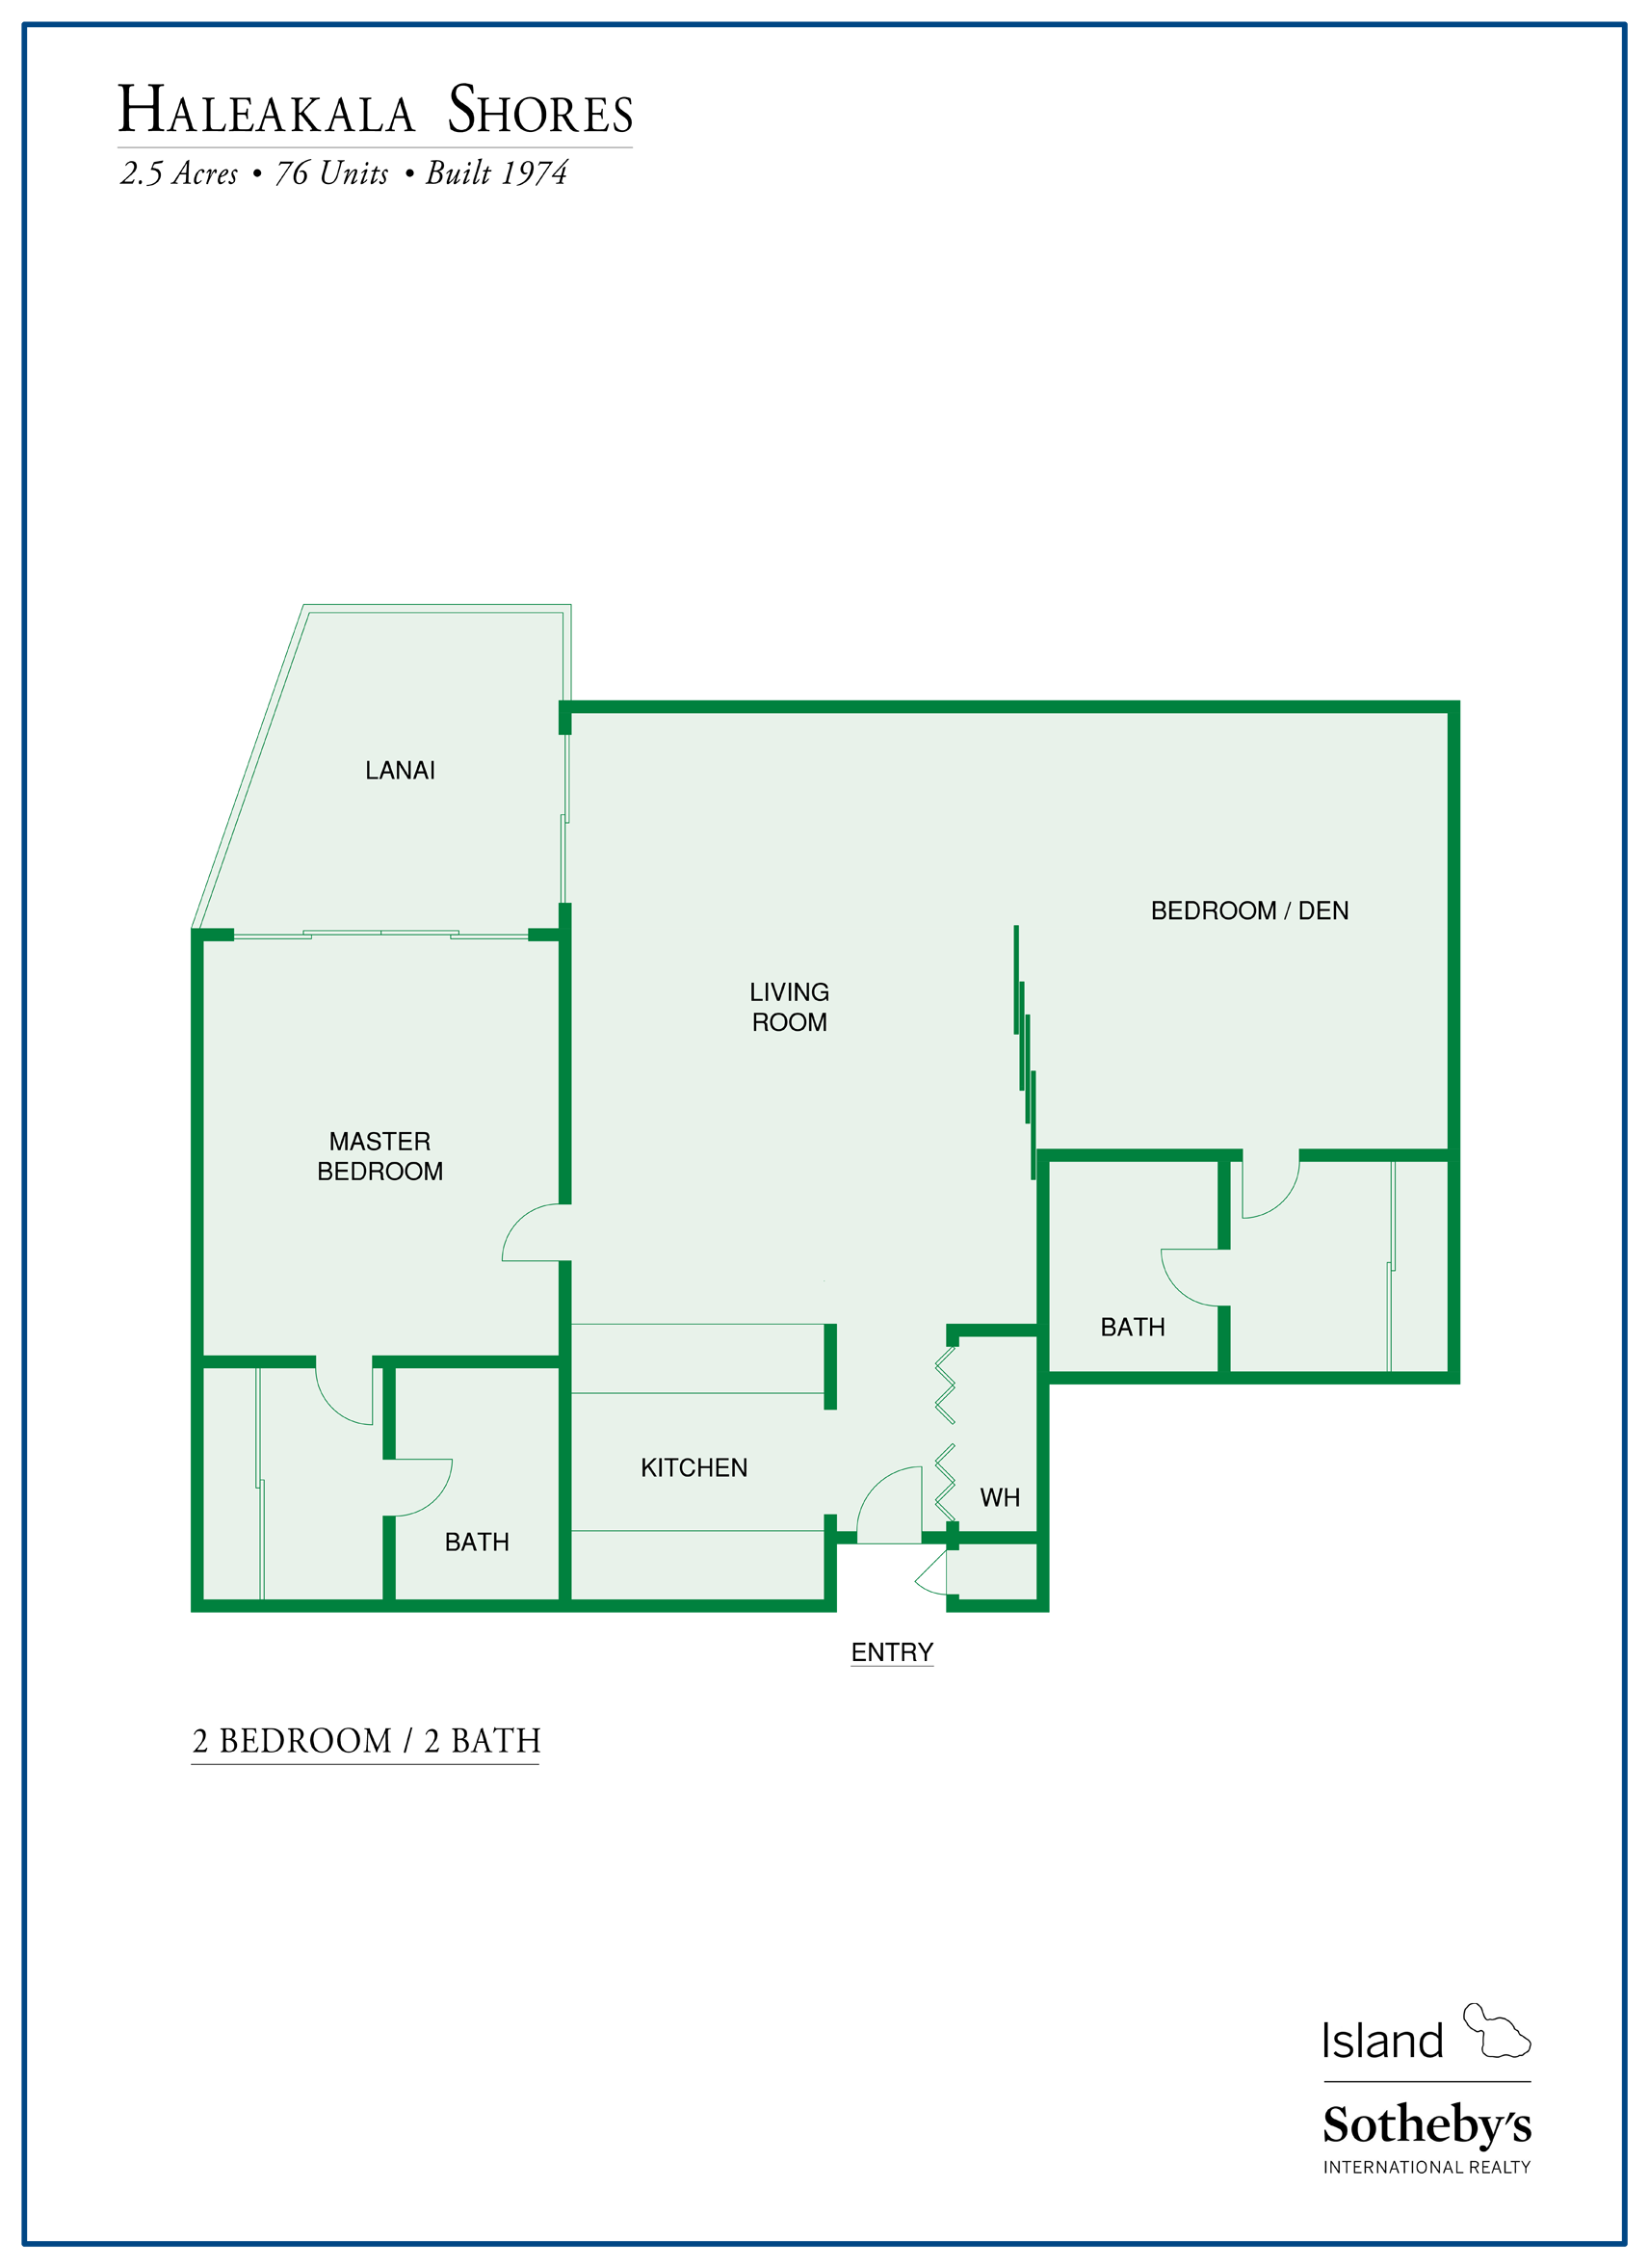 haleakala shores floor plan